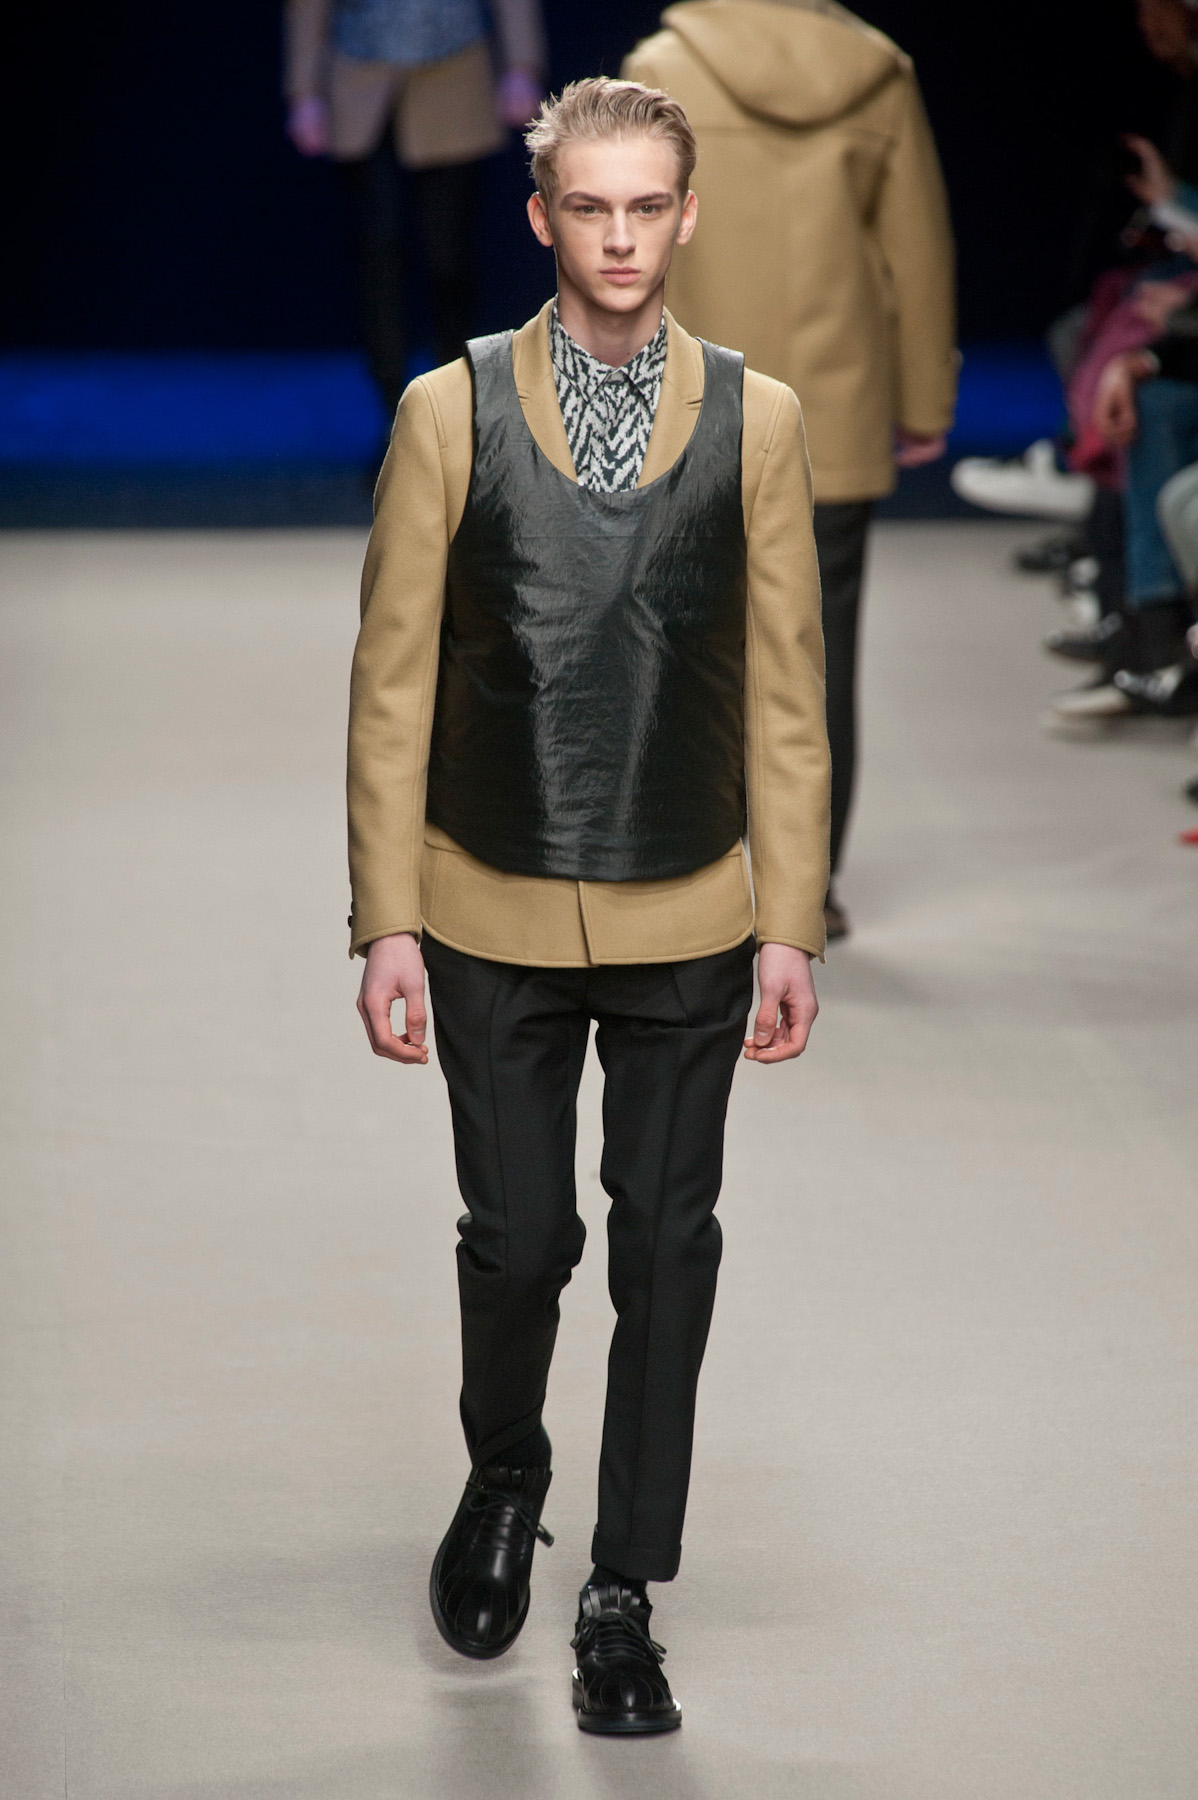 vanassche-MEN-paris-inv2014-28